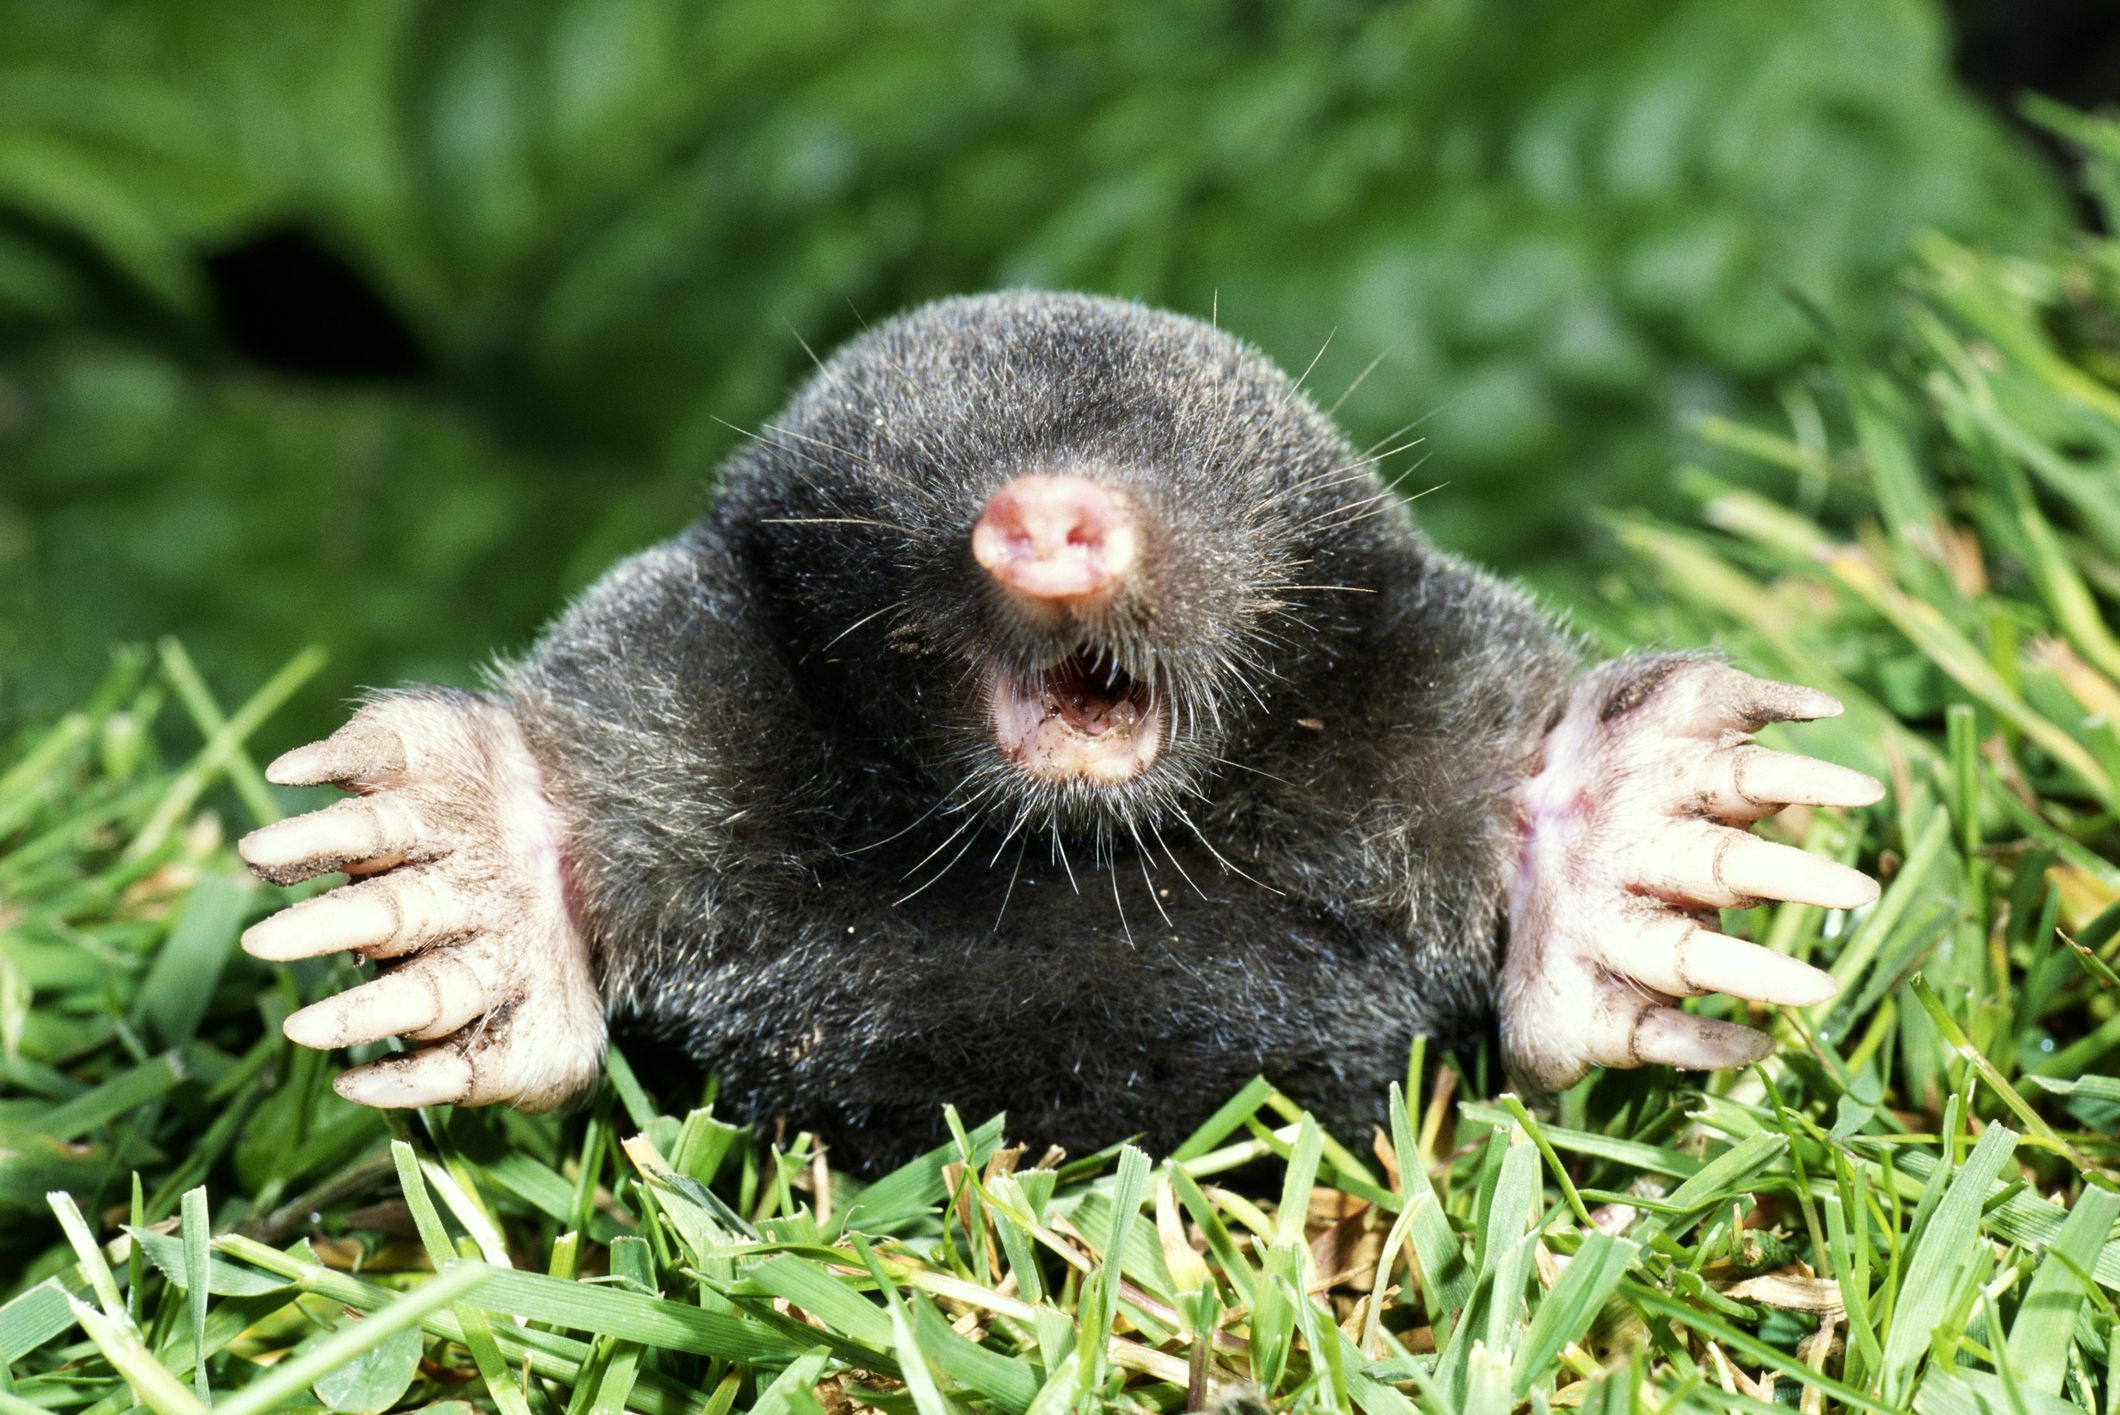 What Is A Vole As Compared To A Mole?